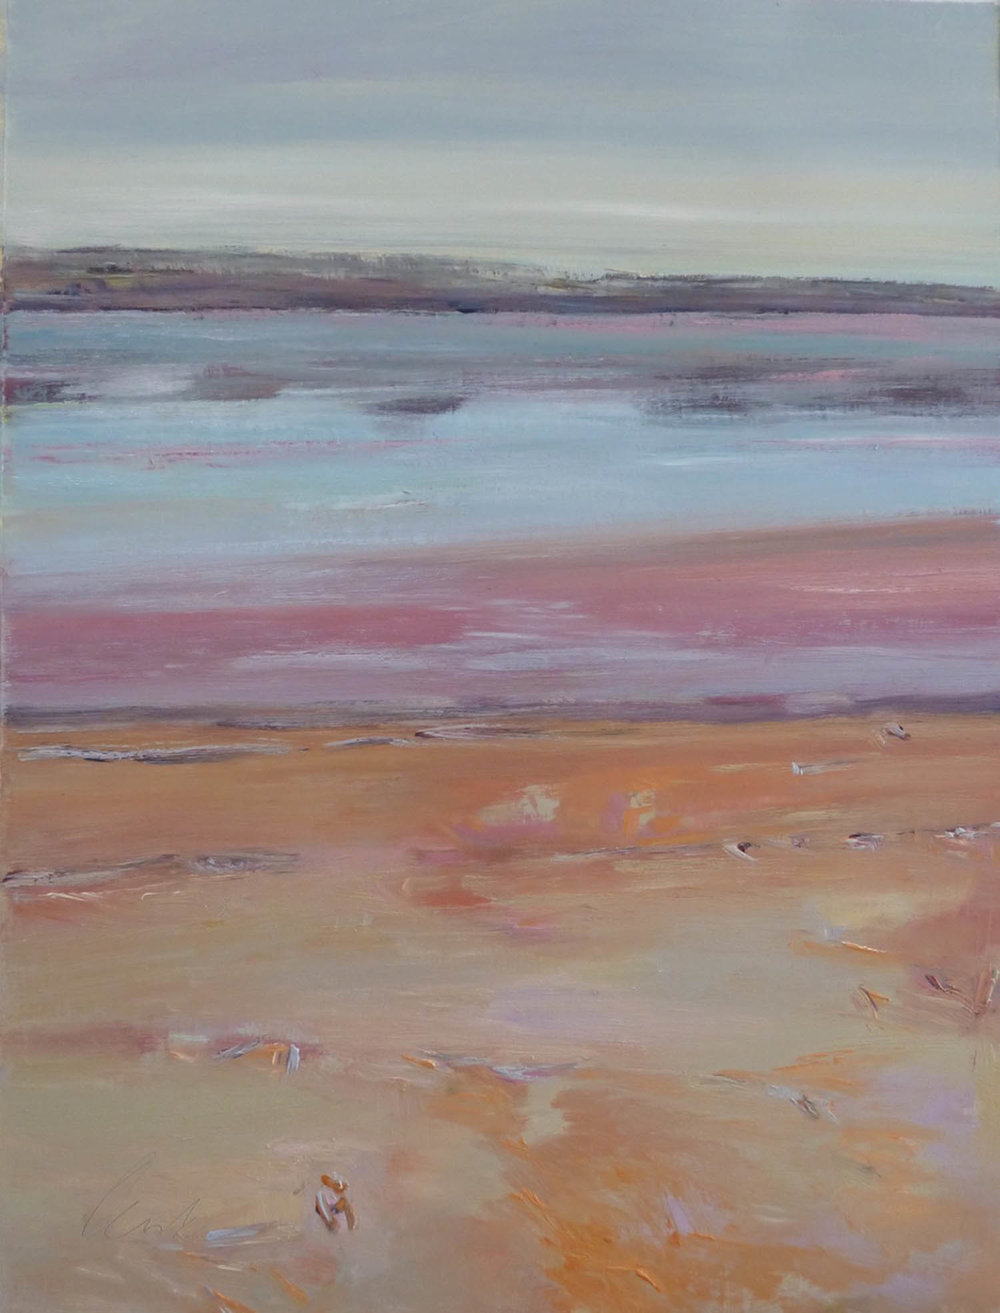 Irma Denk,  Pink Lake, Summer , 2016, 56cm x 68cm, oil on canvas paper.